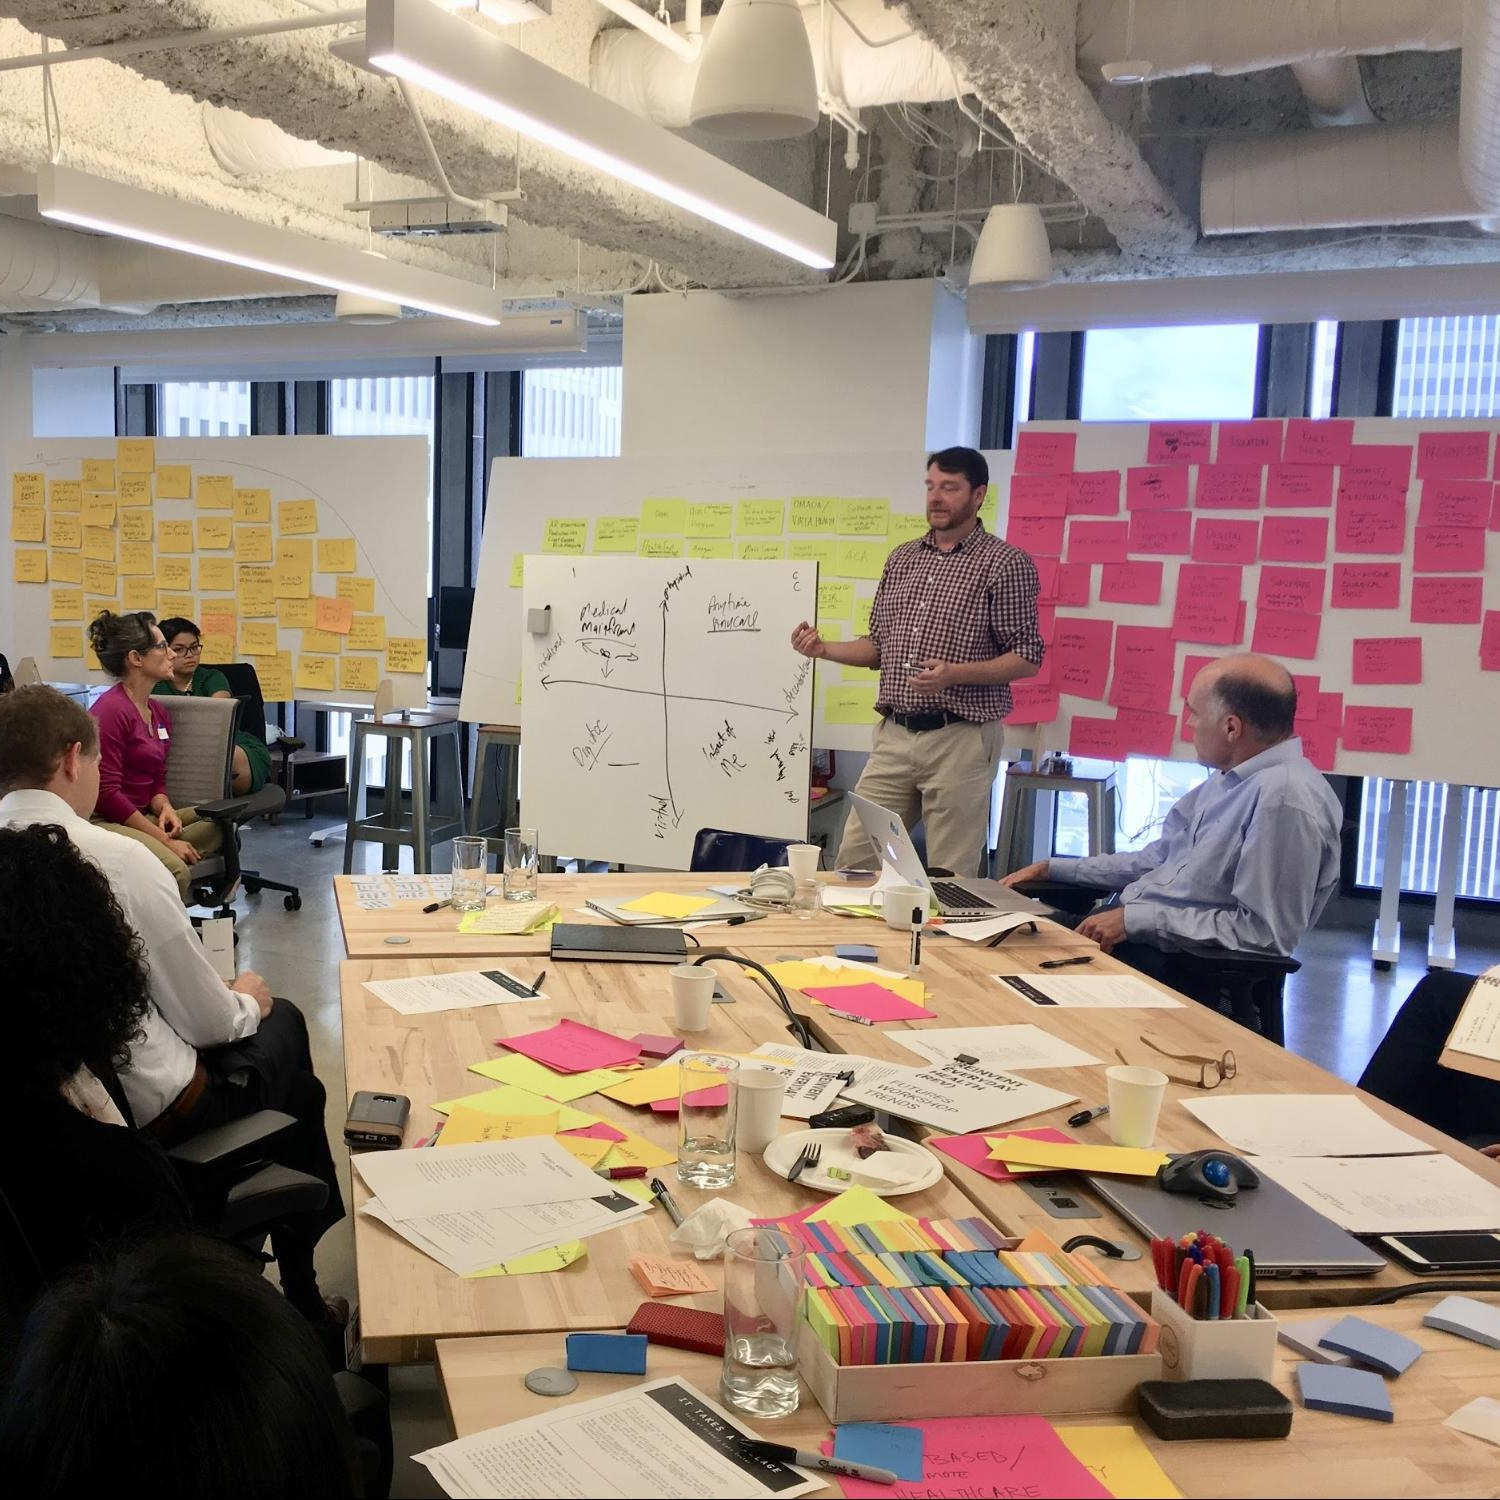 Sutter Health - We worked with Sutter Health's community of nurses, physicians, and other staff to develop scenarios that would inspire future innovation within the organization. The workshop resulted in a range of visions for the future of healthcare.